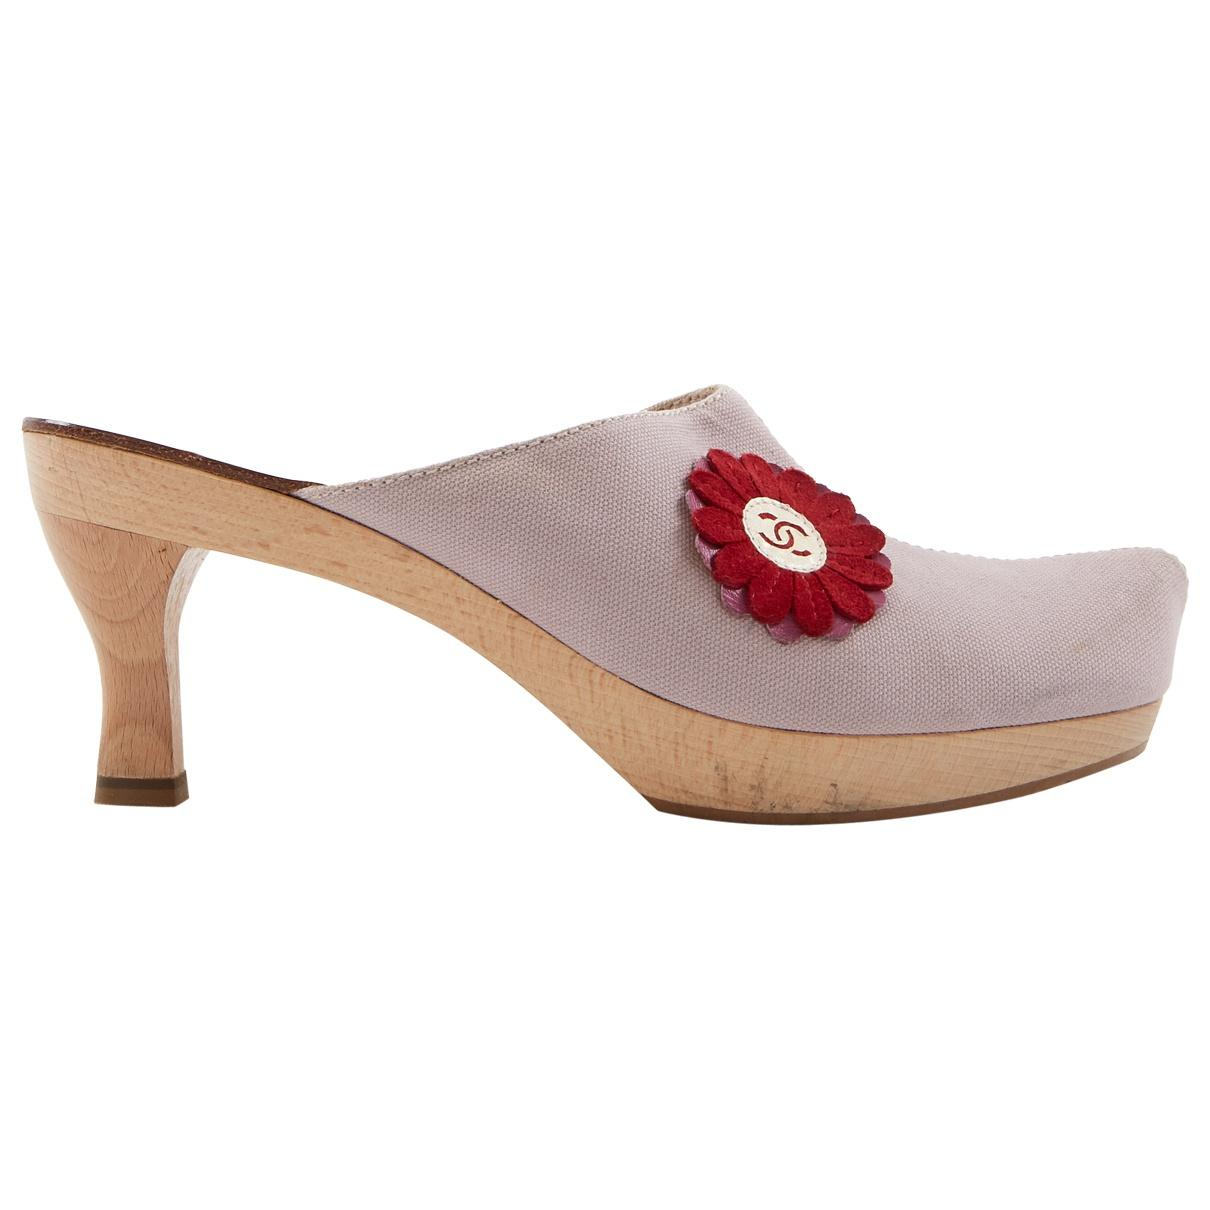 7bc8e5d617b Chanel. Women s Pink Cloth Mules   Clogs. £326 £277 From Vestiaire  Collective